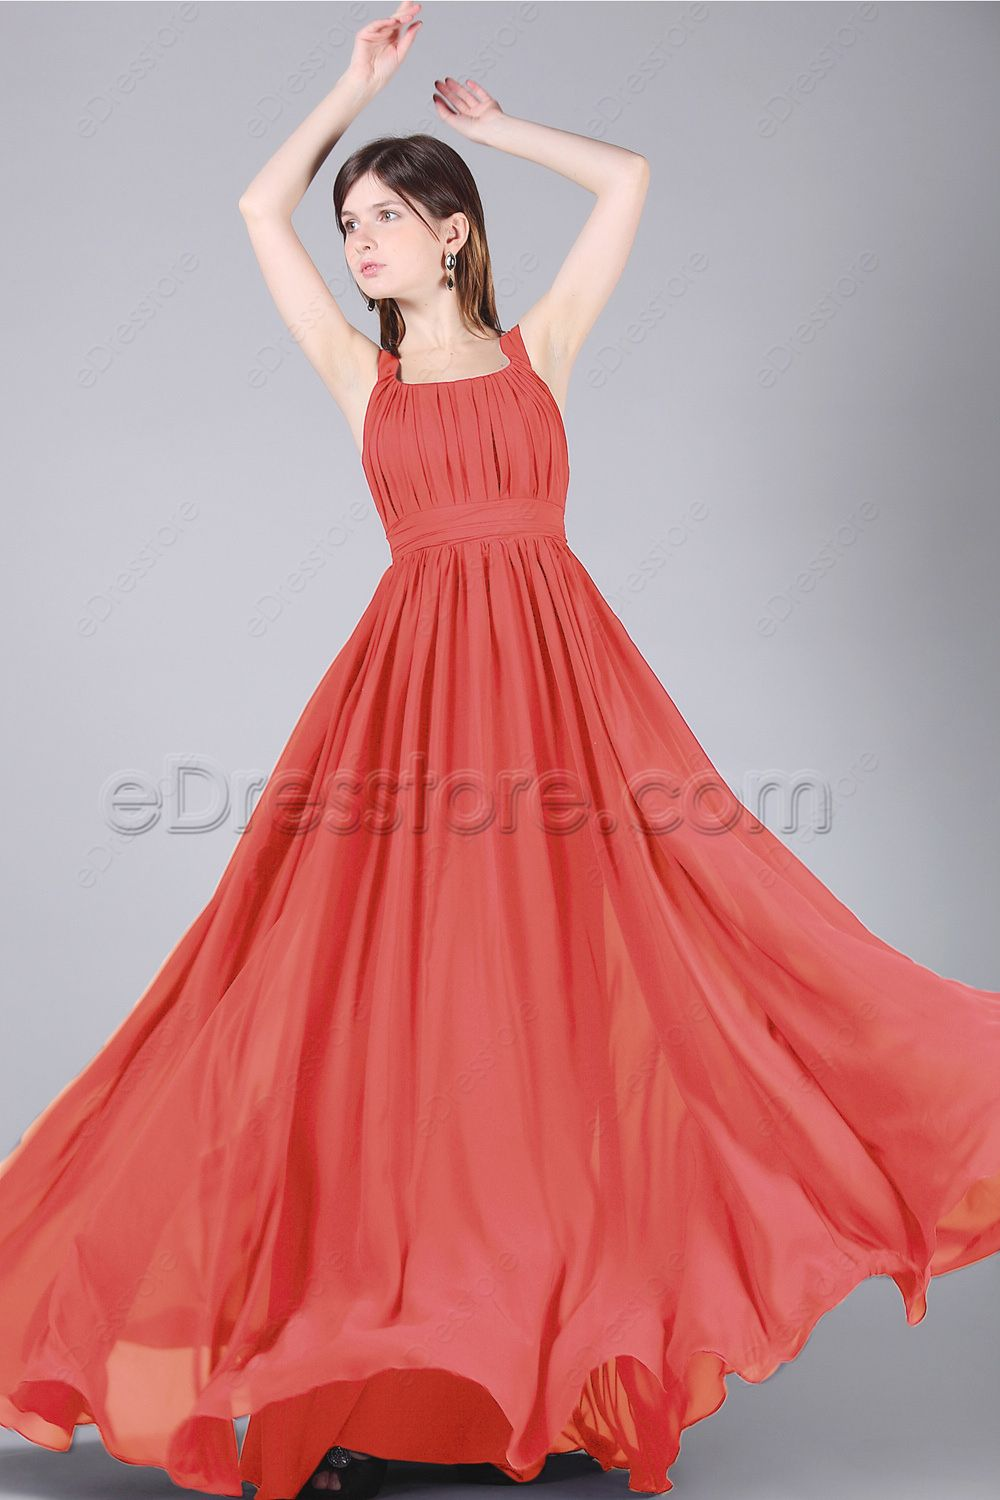 Fashion style Size plus bridesmaid dresses coral for woman